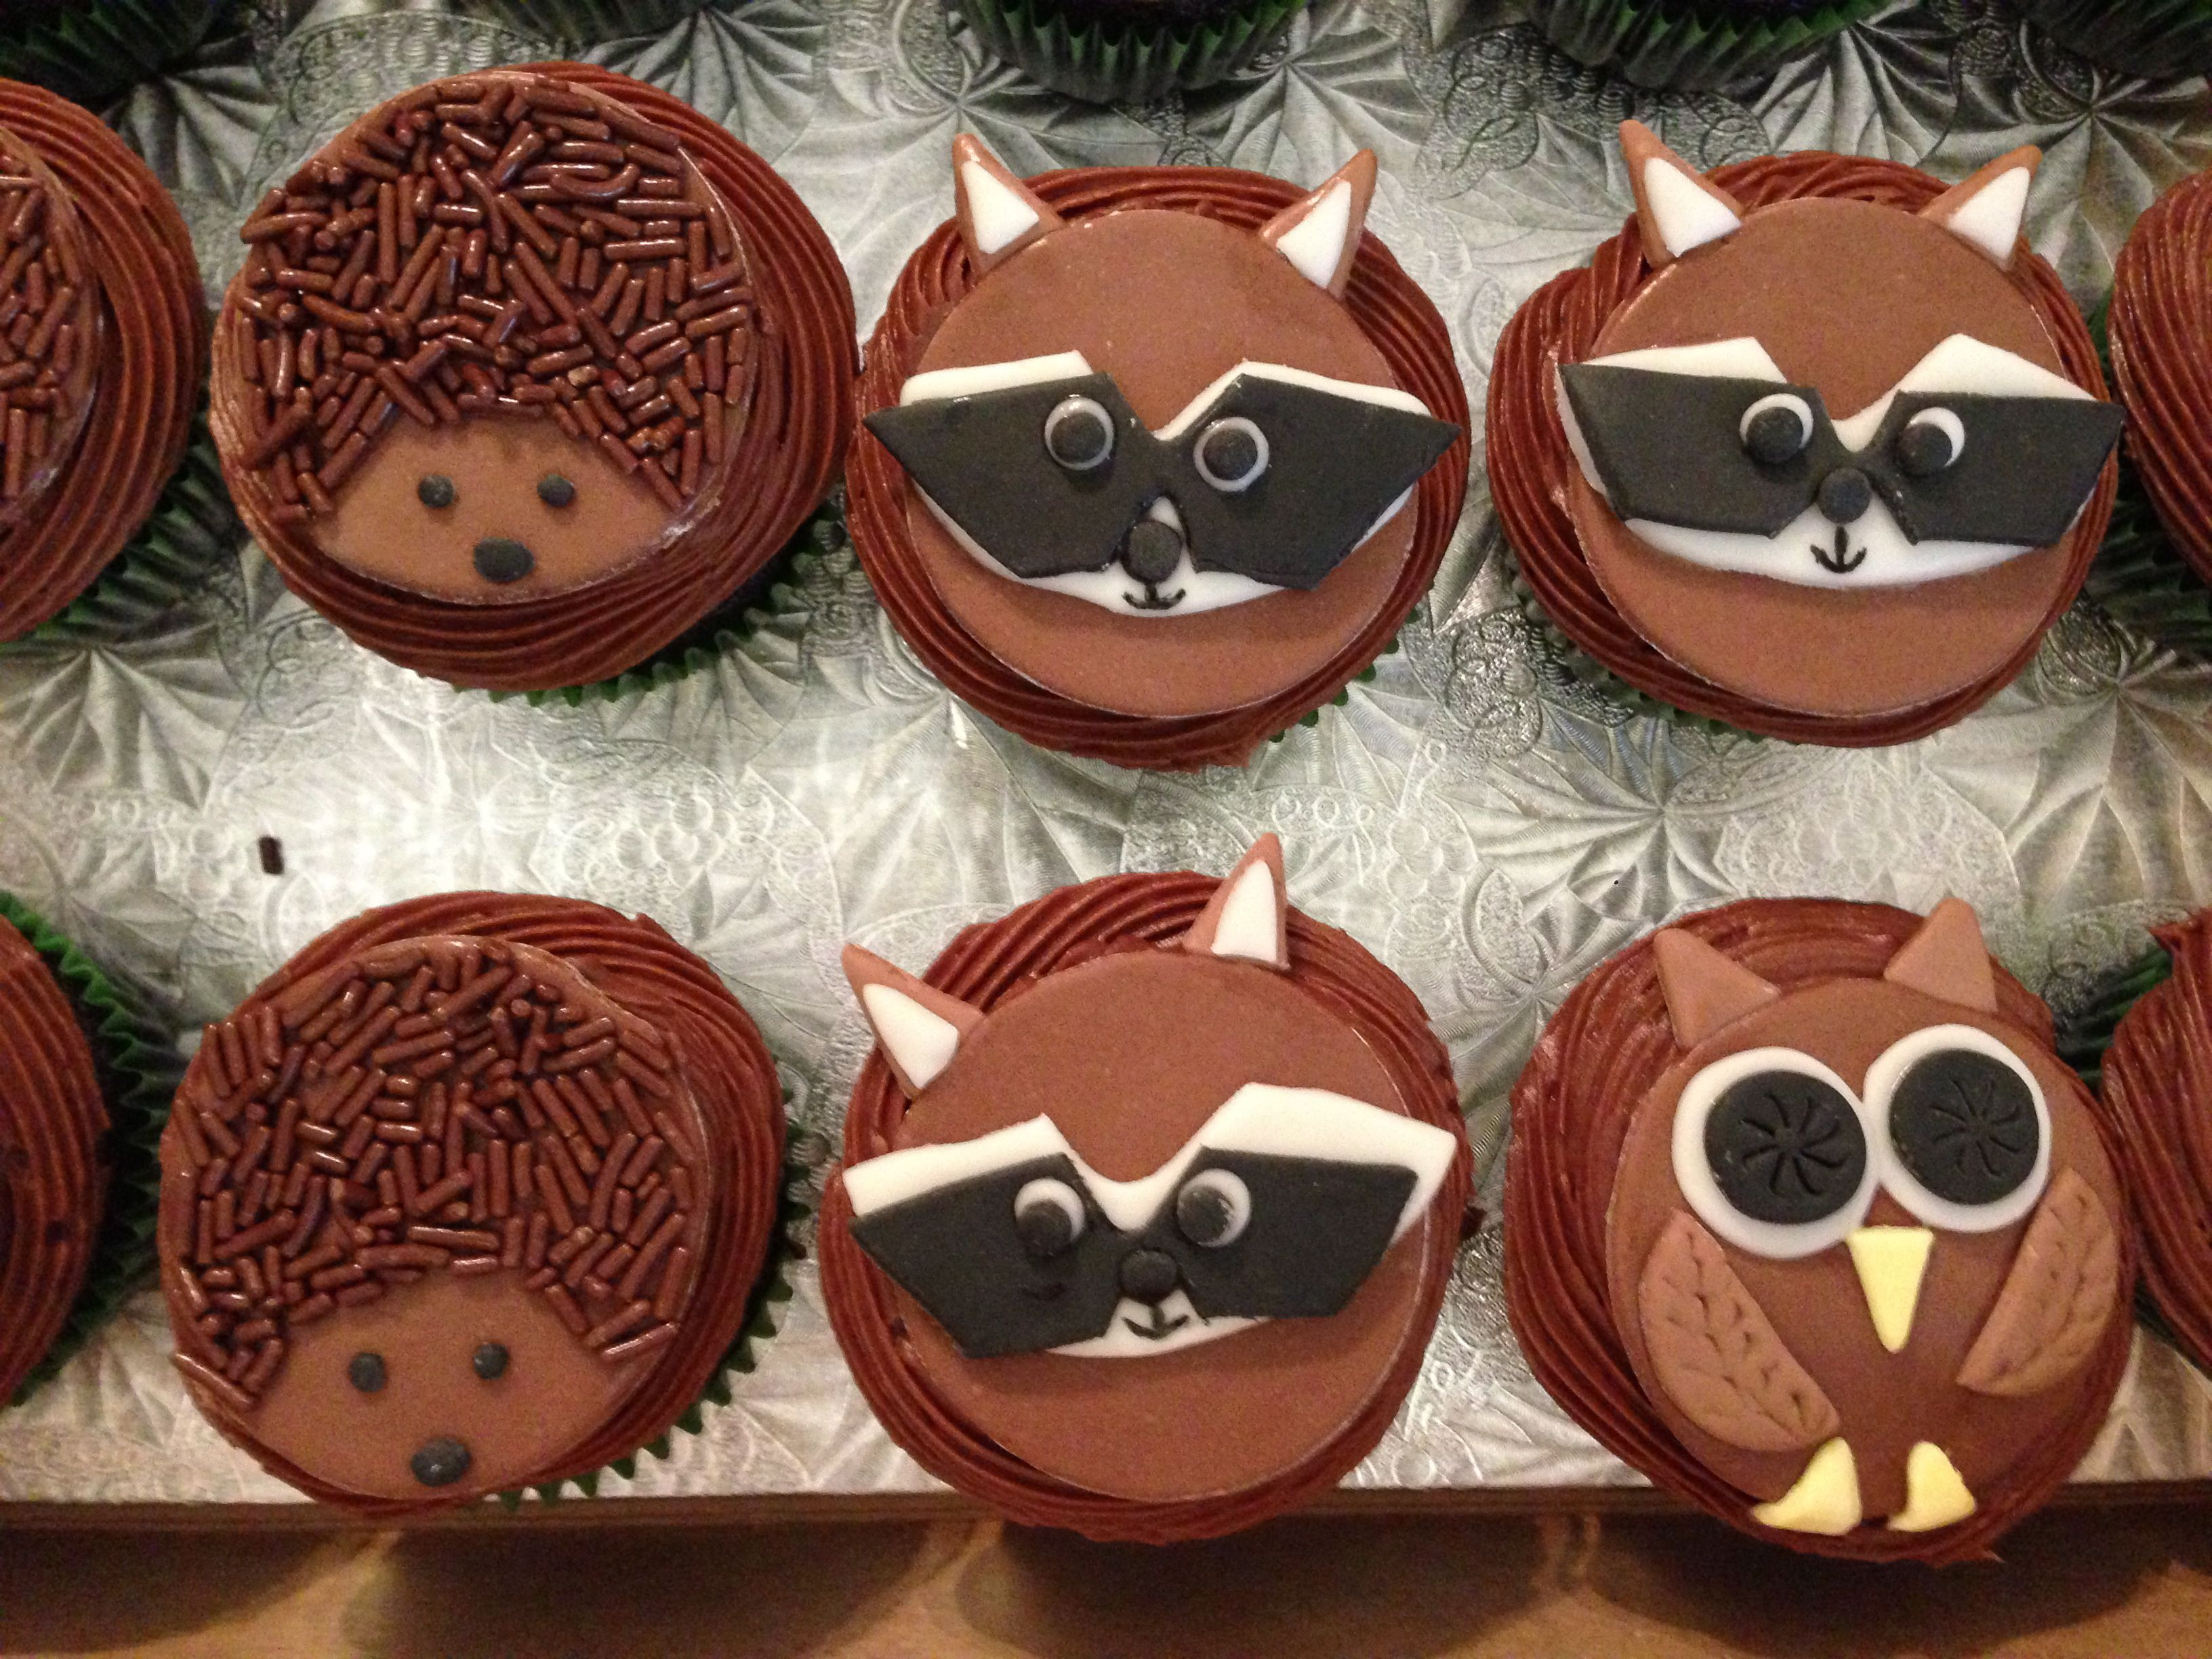 Fondant woodland animals on cupcakes 1 of 2 (With images